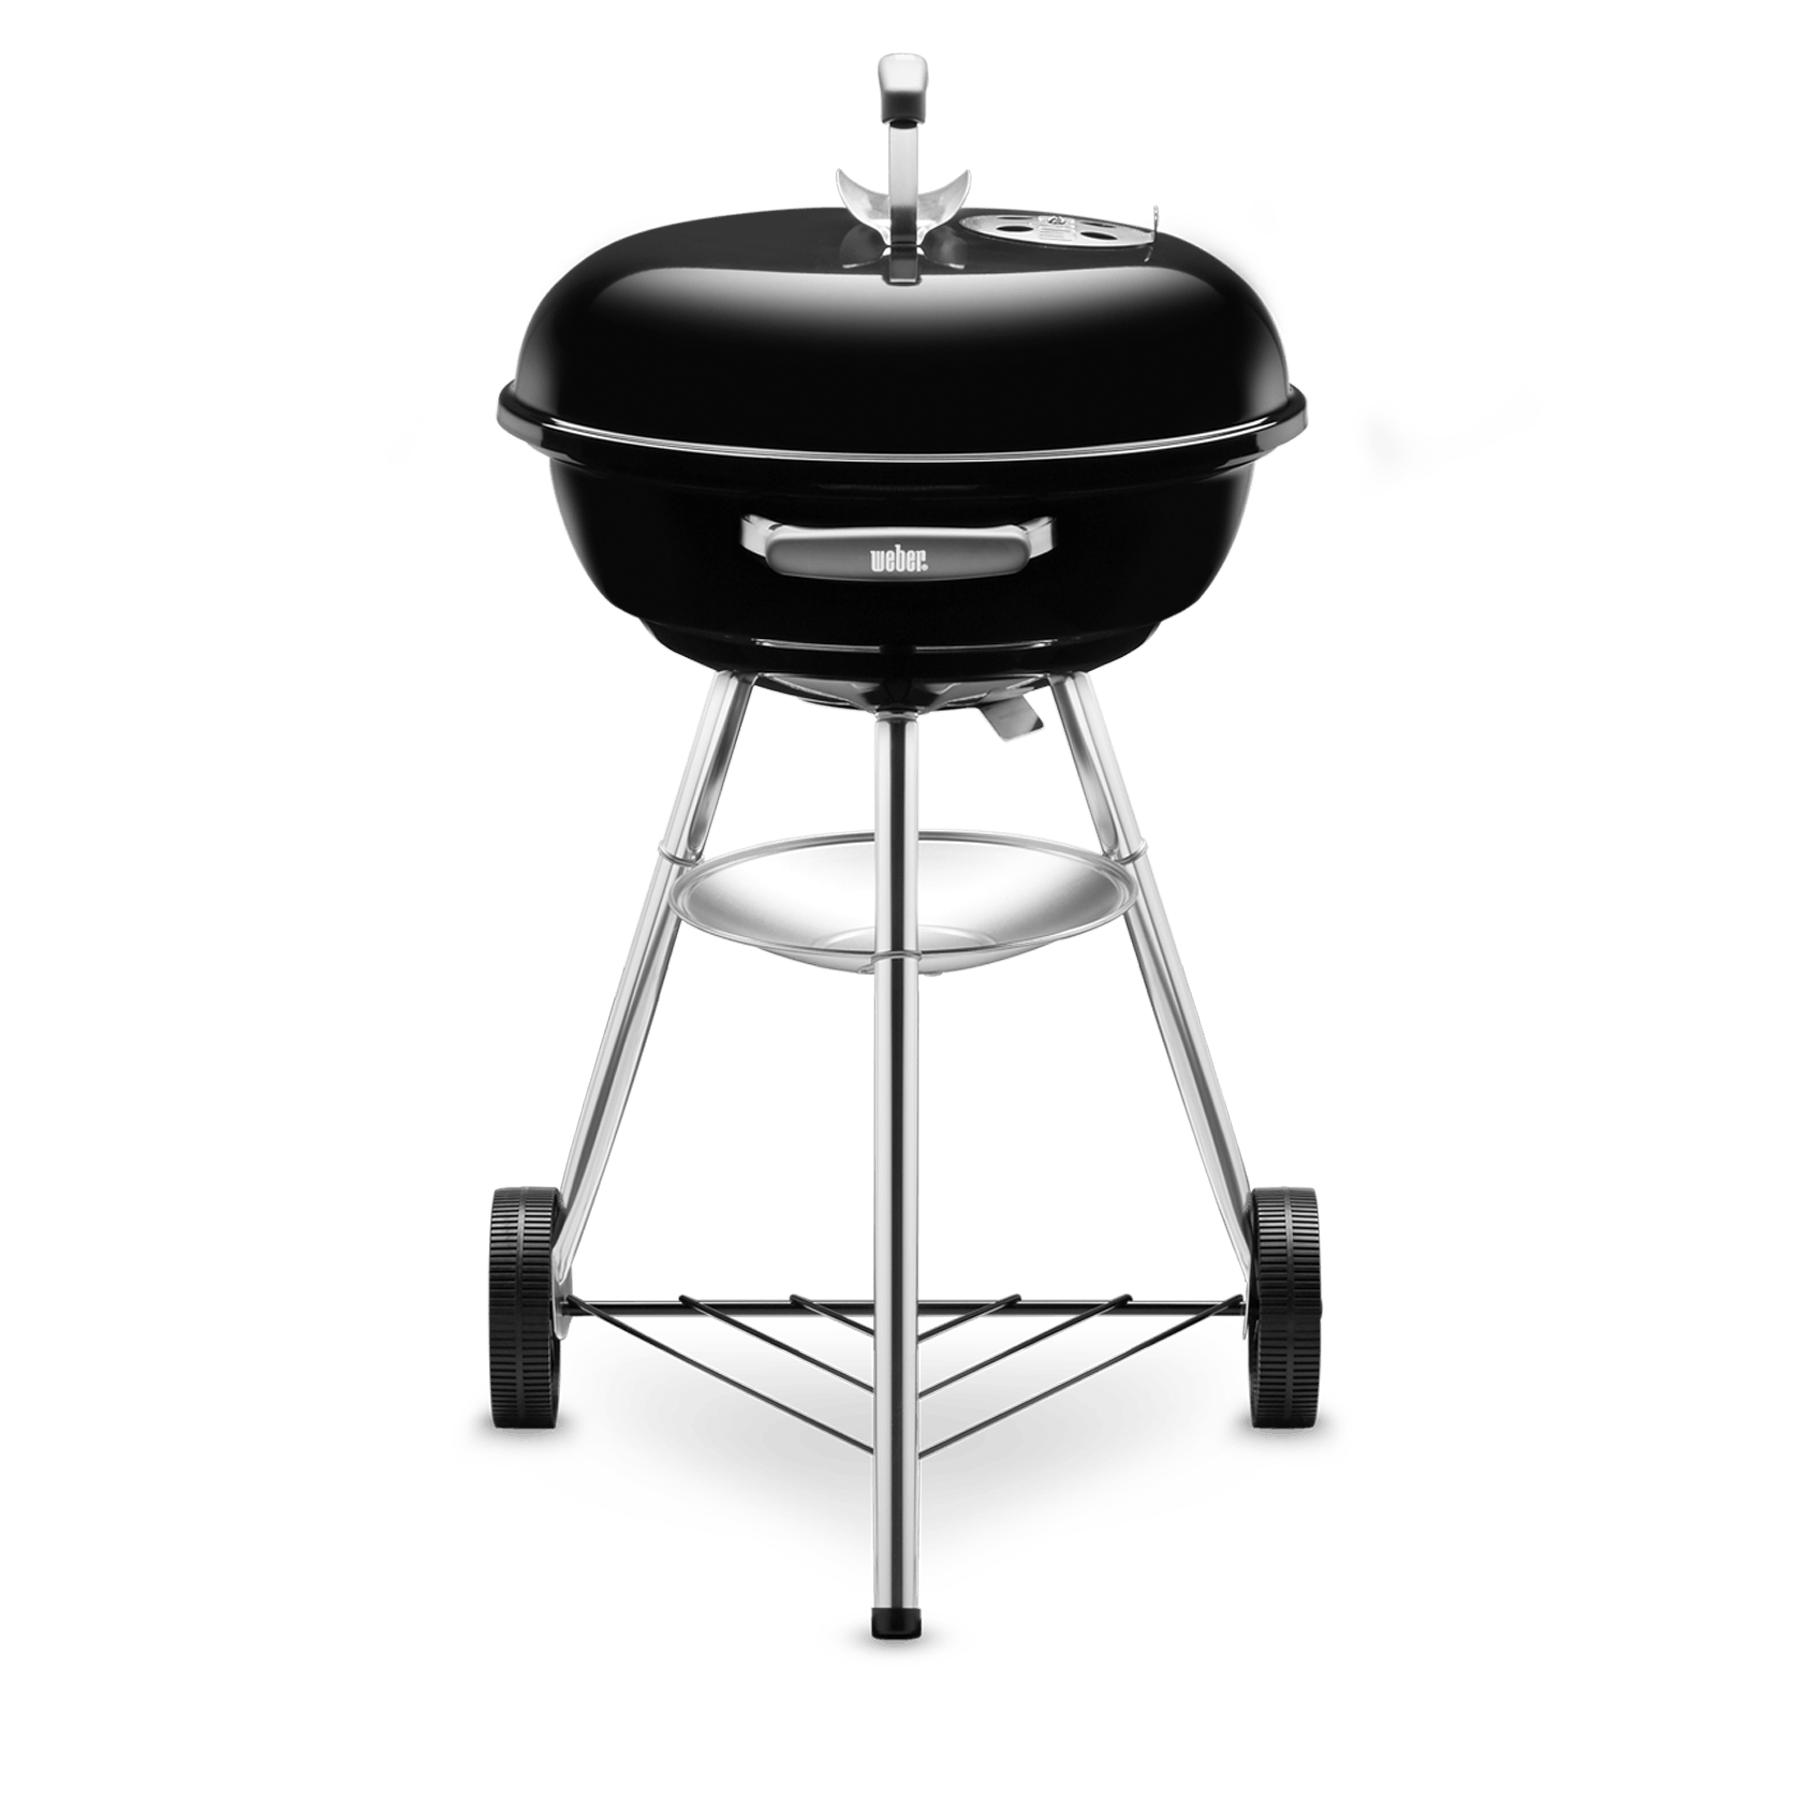 Charcoal grill png. Compact kettle cm series